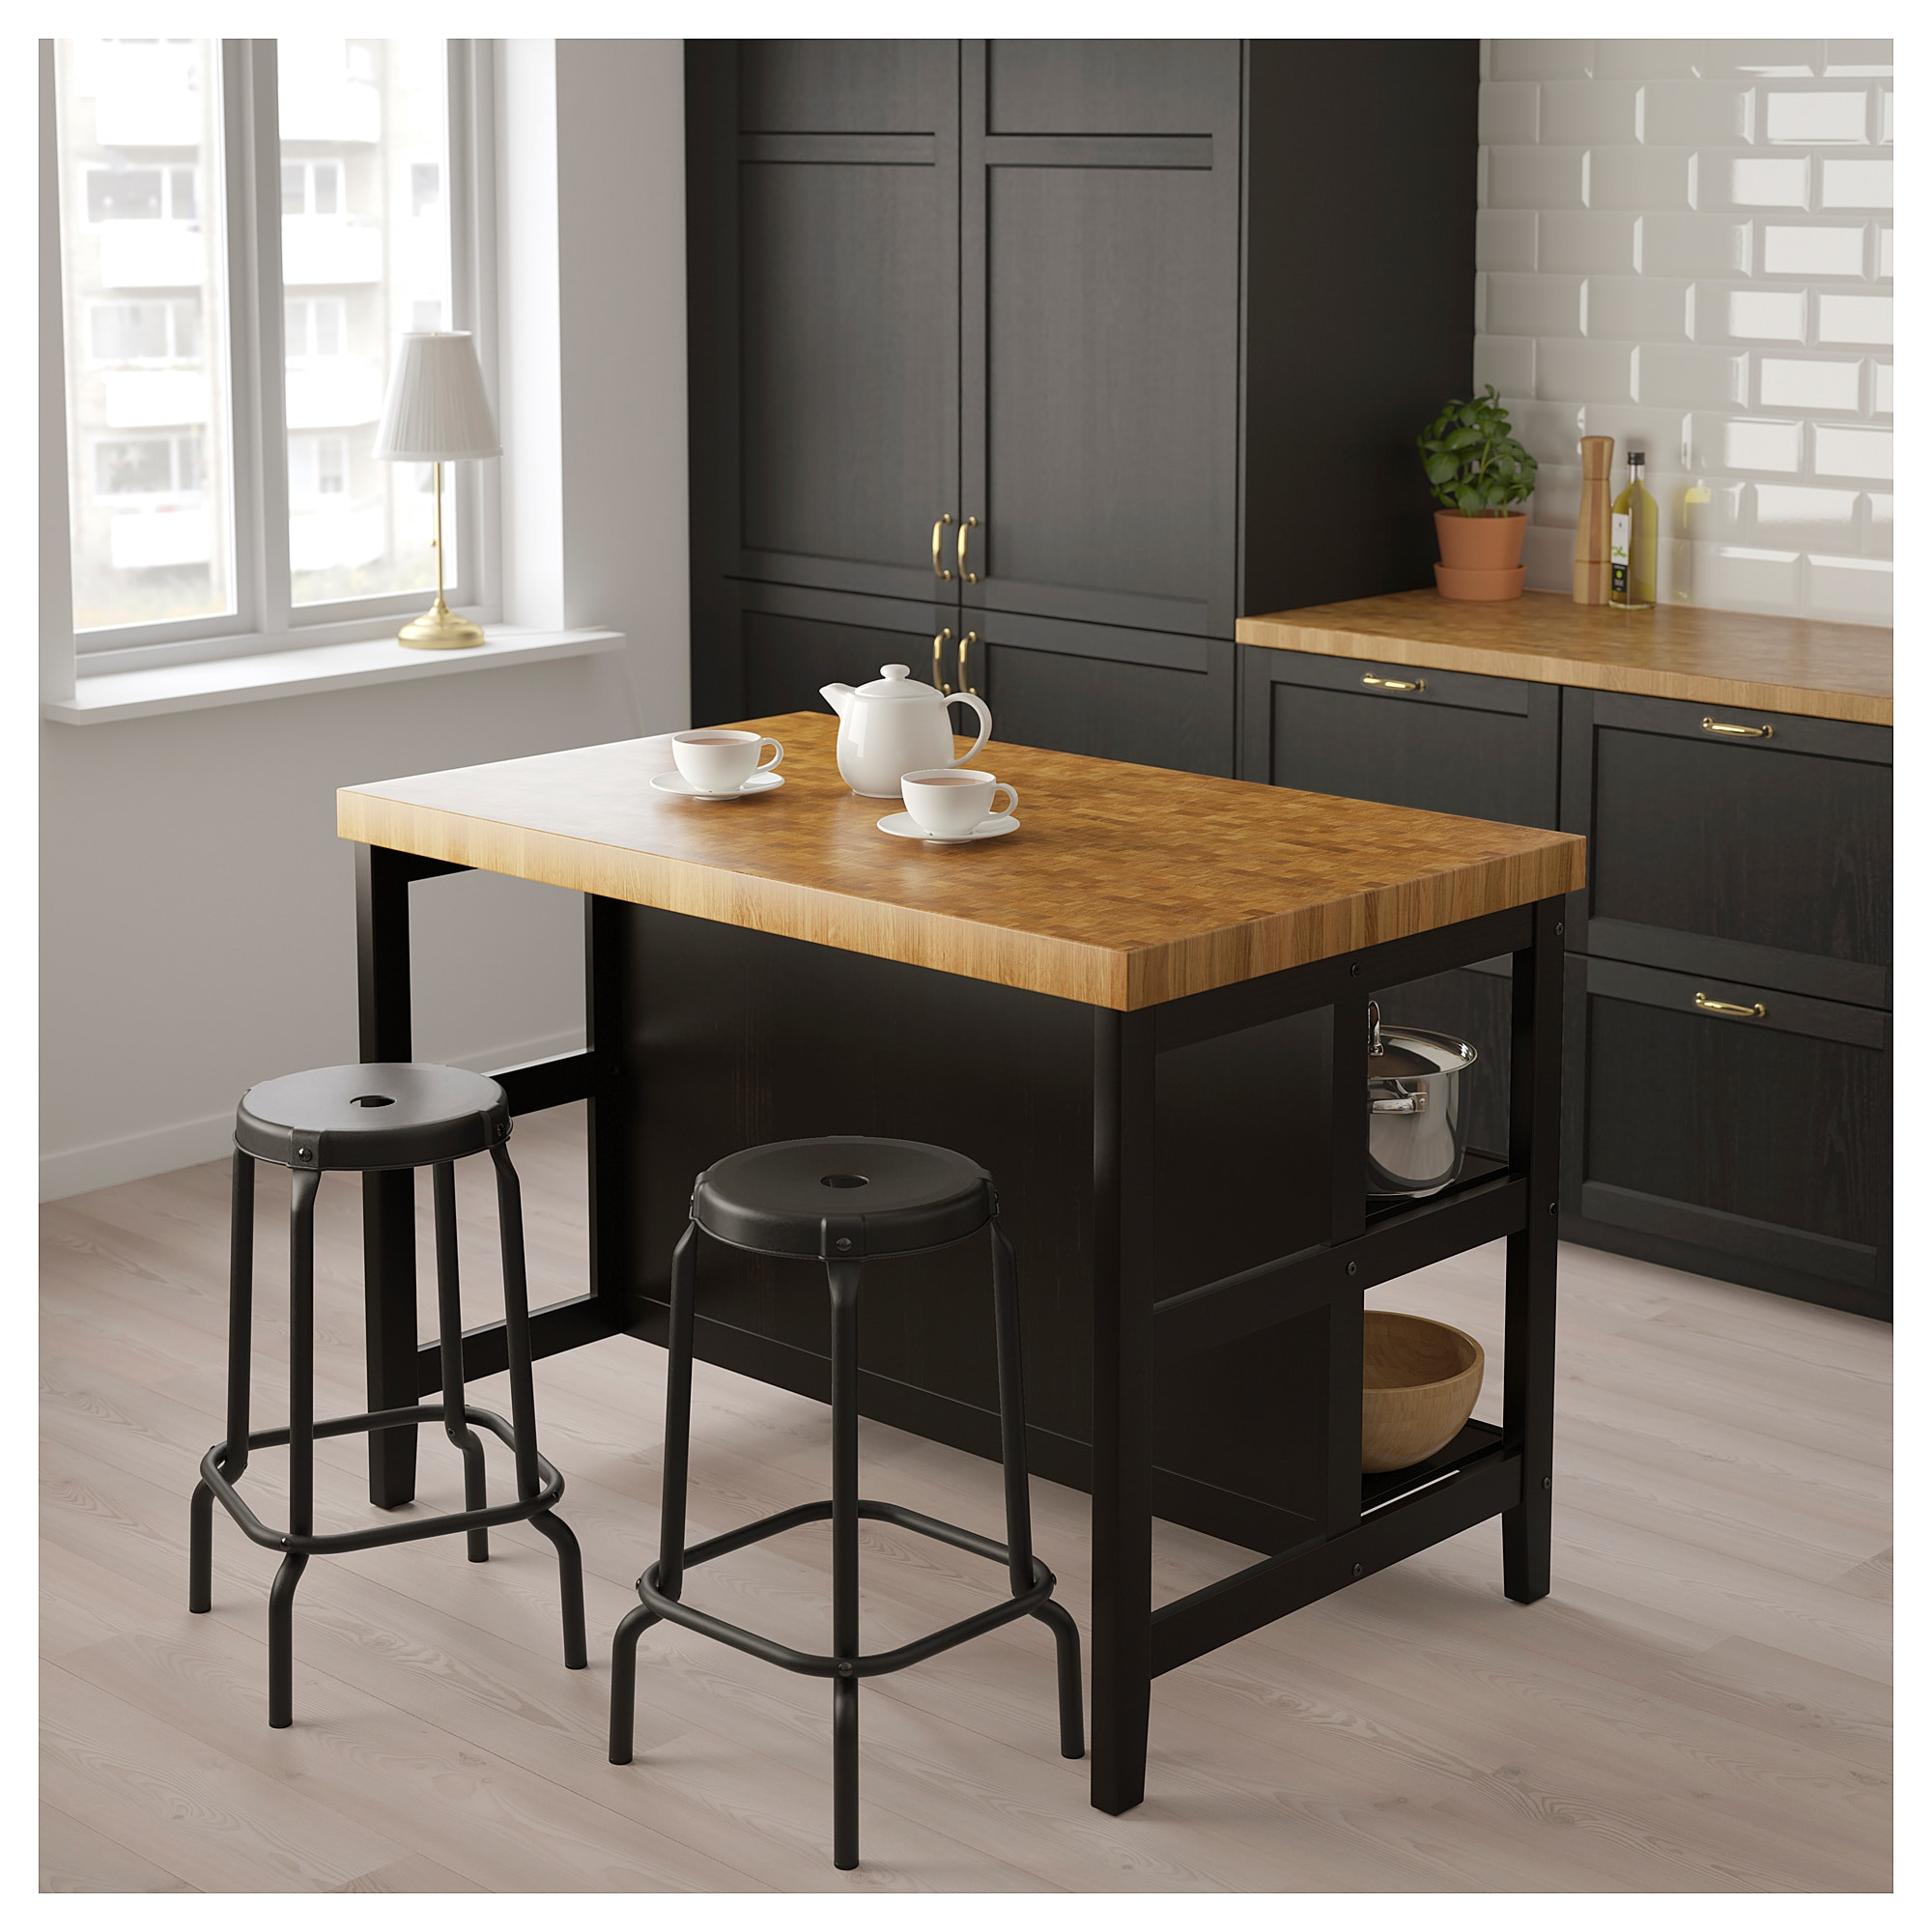 Cuisine D Angle Avec Bar ikea vadholma black, oak kitchen island in 2020 | ikea